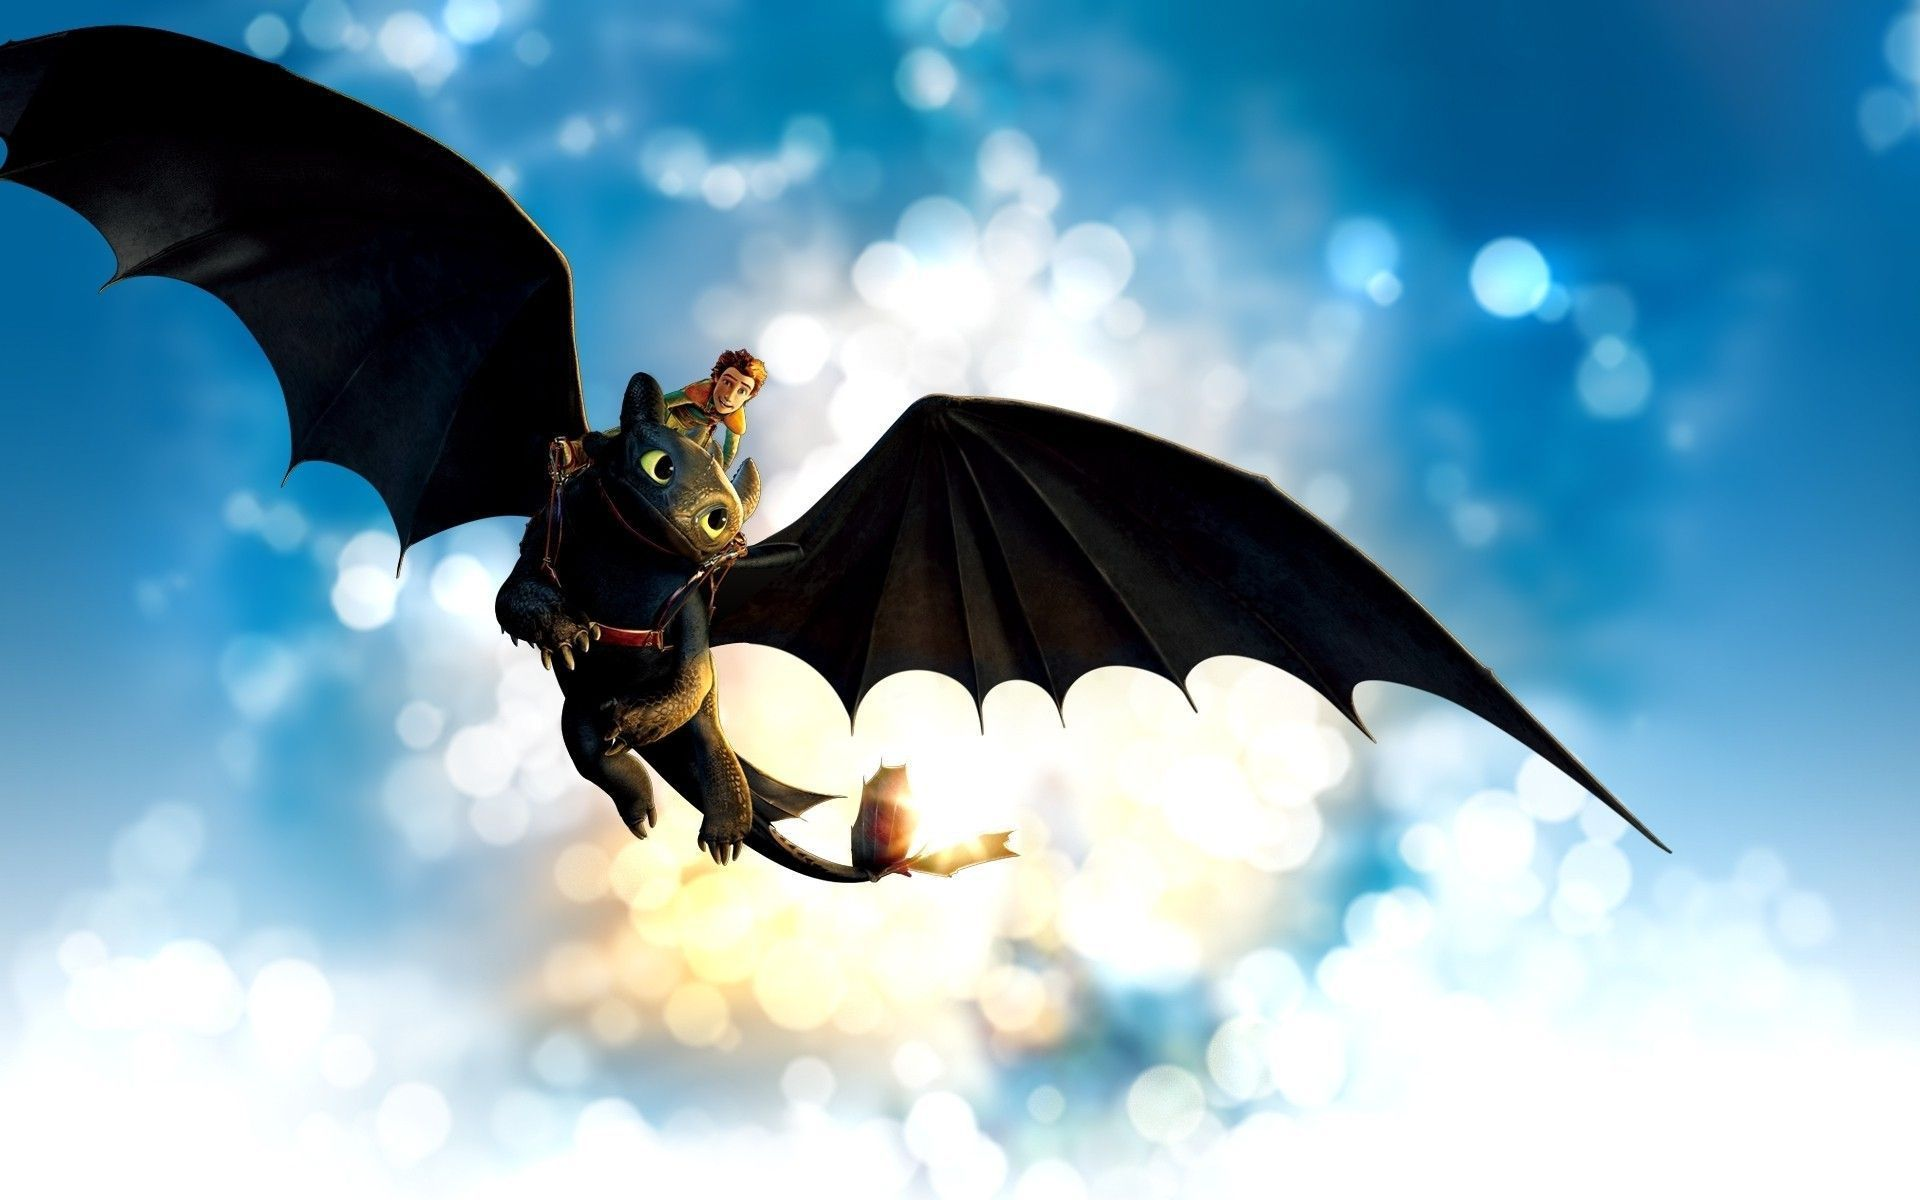 How To Train Your Dragon Hiccup Toothless Wallpapers Hd